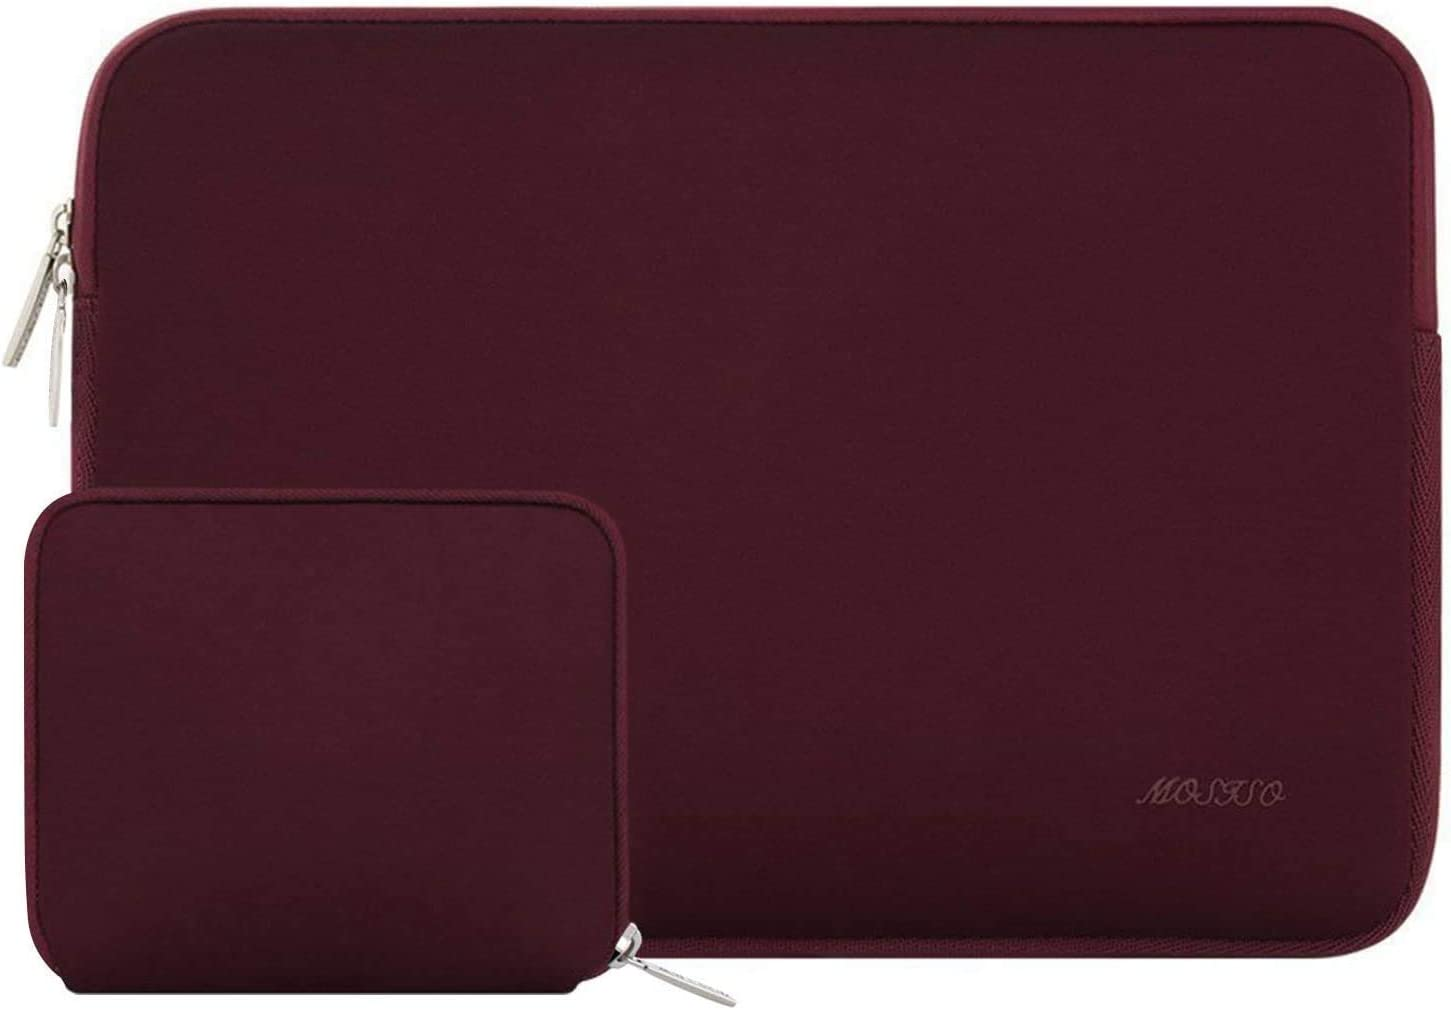 MOSISO Laptop Sleeve Compatible with 15 inch MacBook Pro Touch Bar A1990 A1707, ThinkPad X1 Yoga, 14 Dell HP Acer, 2019 Surface Laptop 3 15, Water Repellent Neoprene Bag with Small Case, Wine Red